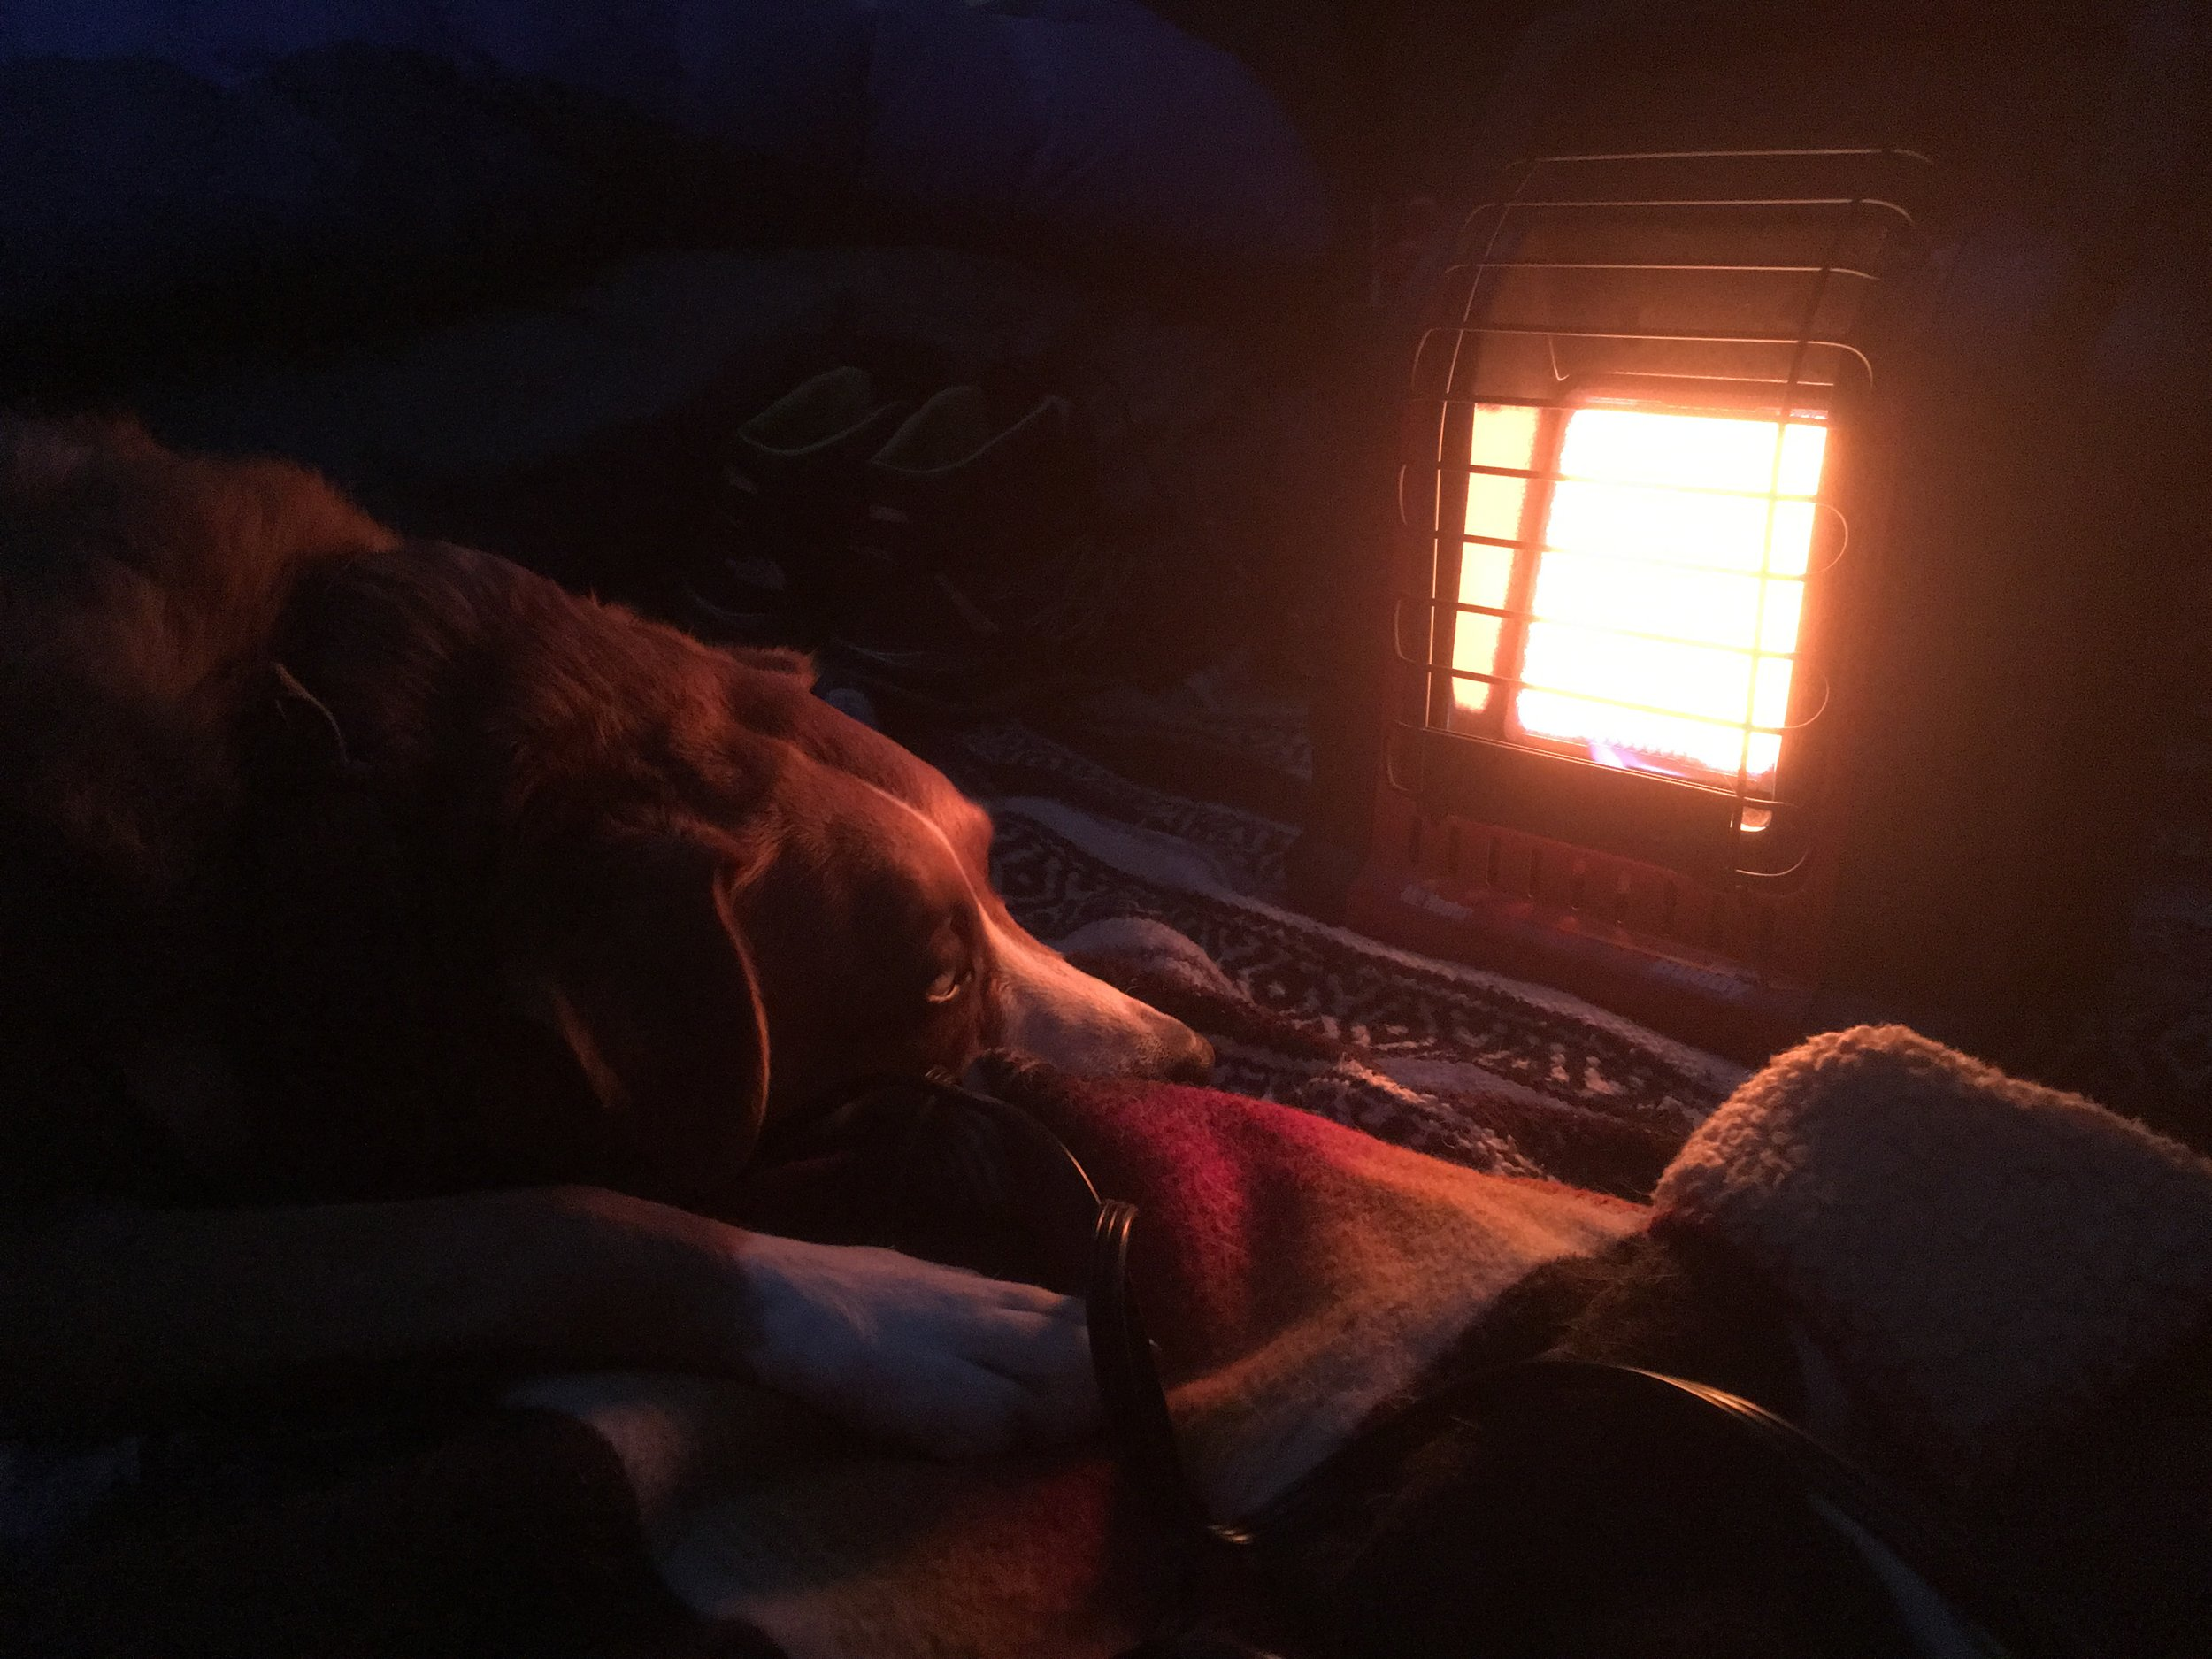 Dog warming by heater